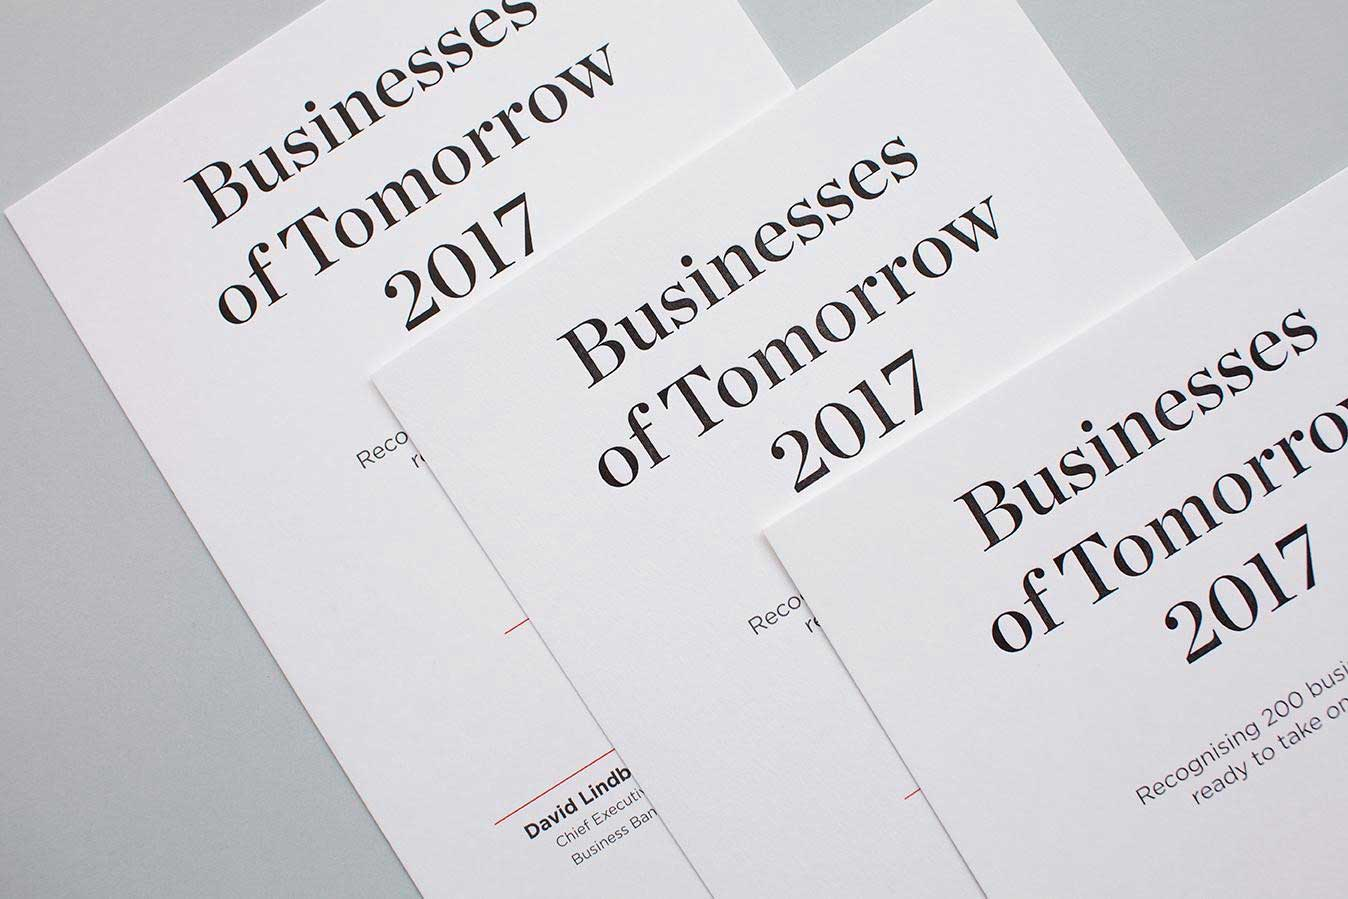 Business of Tomorrow